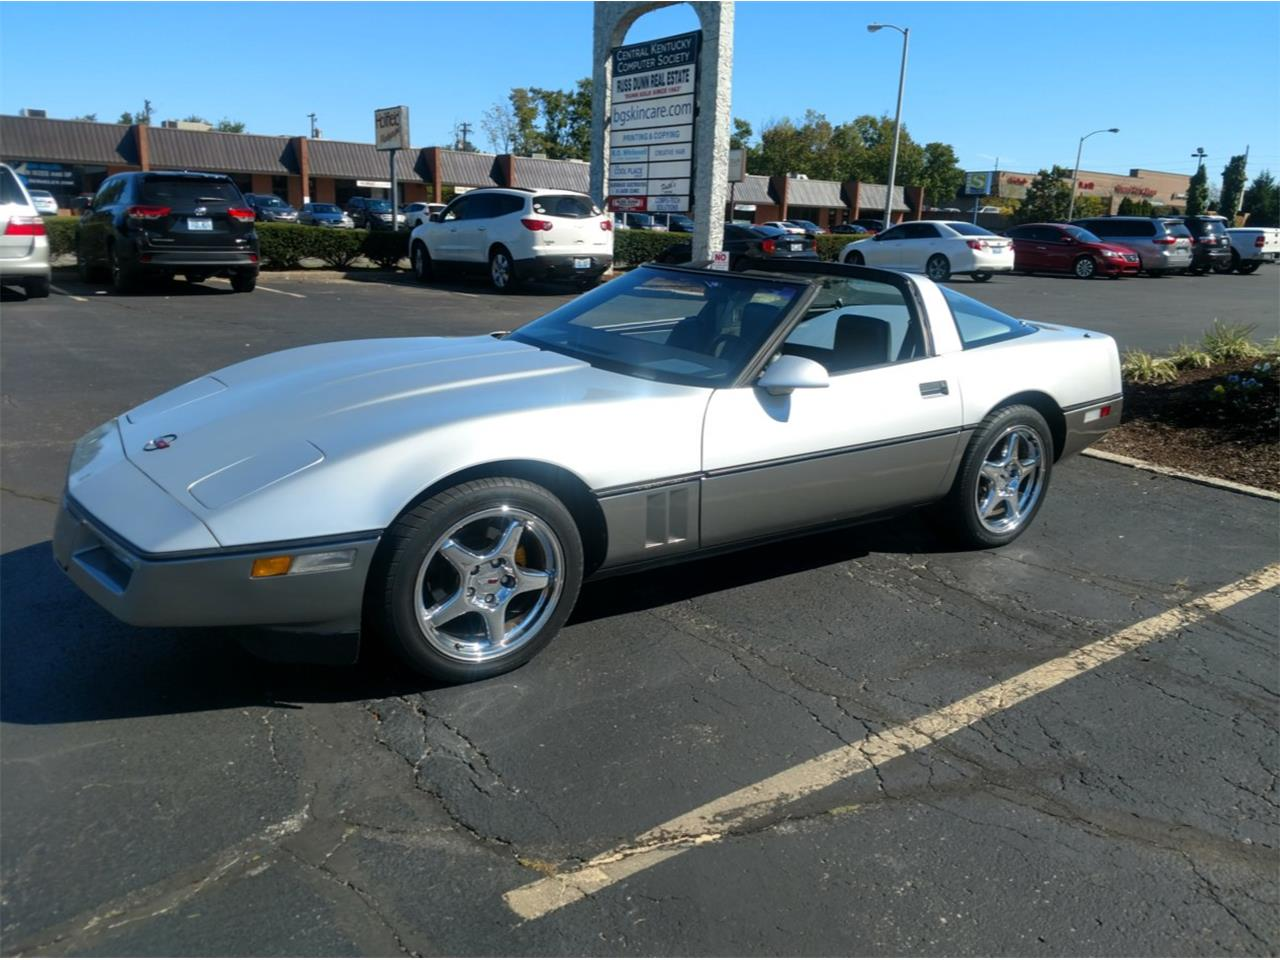 Large Picture of 1985 Chevrolet Corvette located in Lexington Kentucky - $9,500.00 Offered by a Private Seller - LSYY